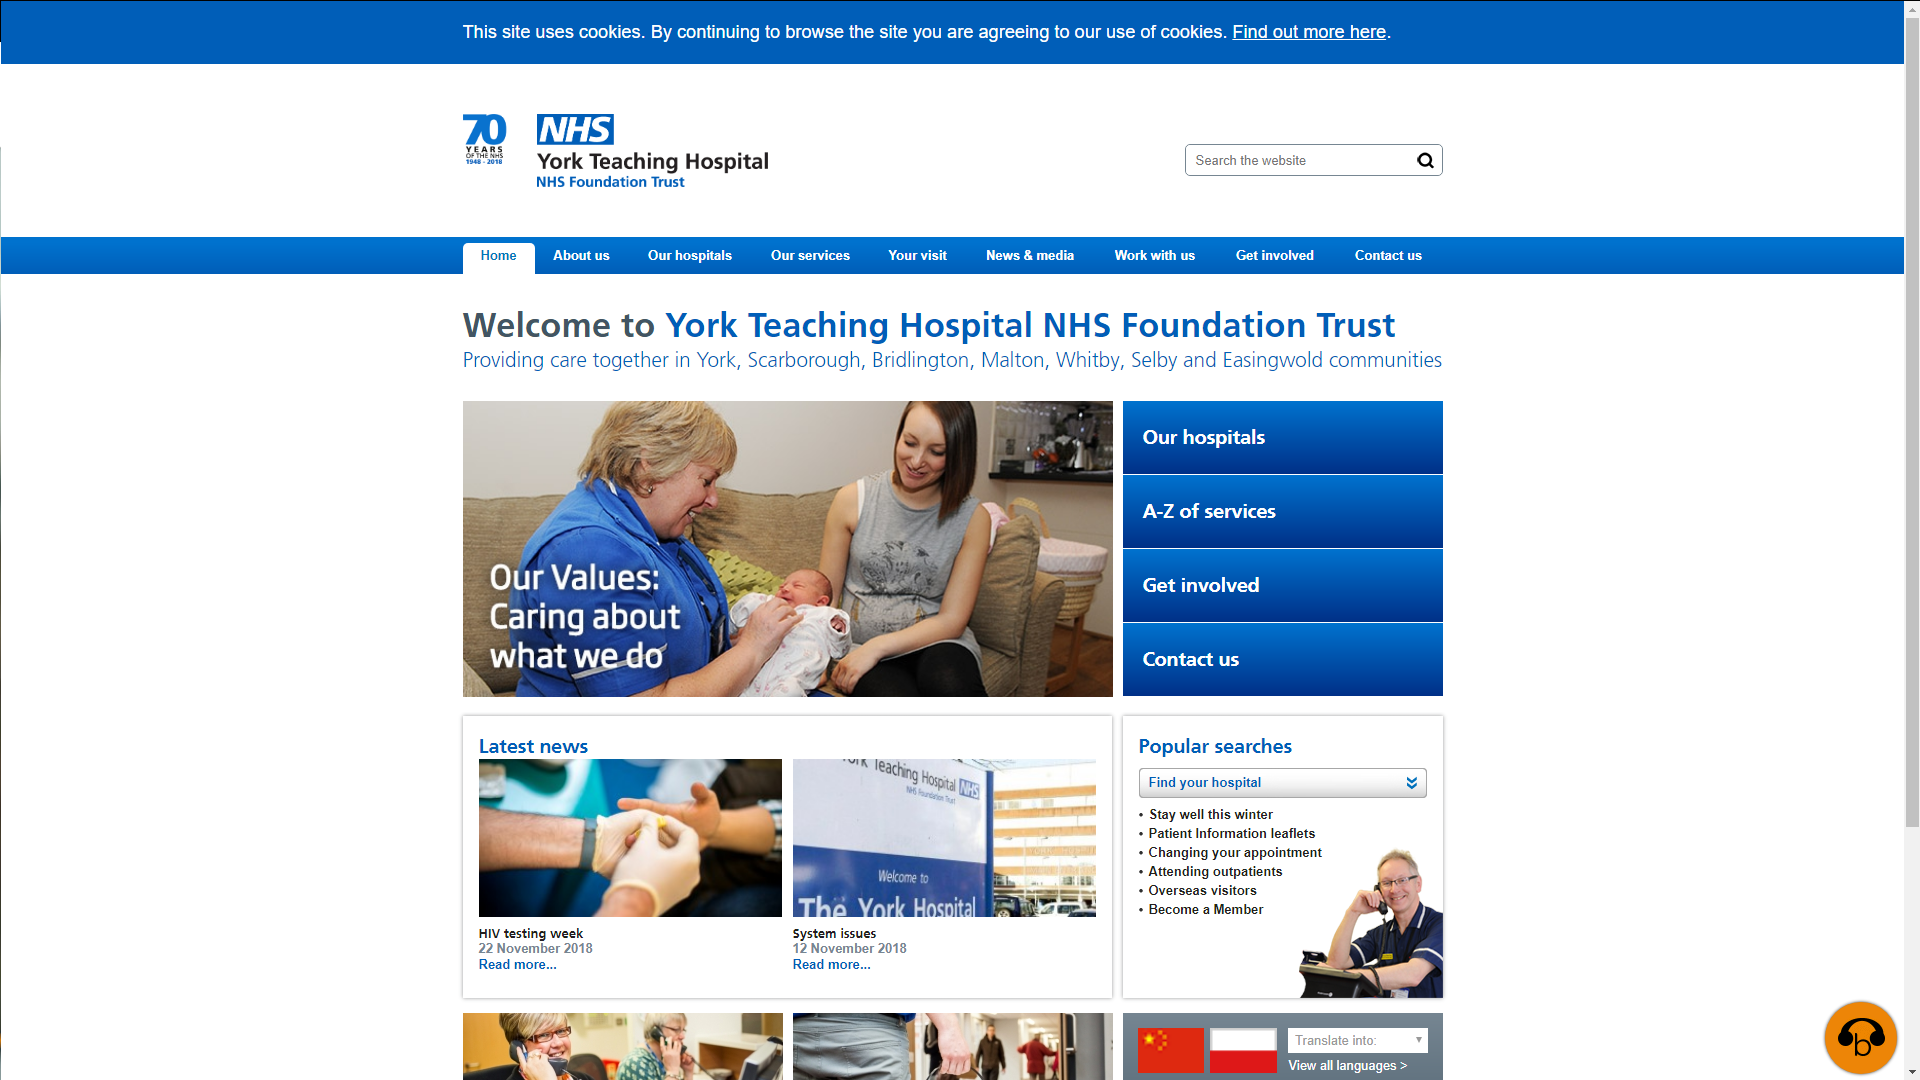 York Teaching Hospital NHS Foundation Trust